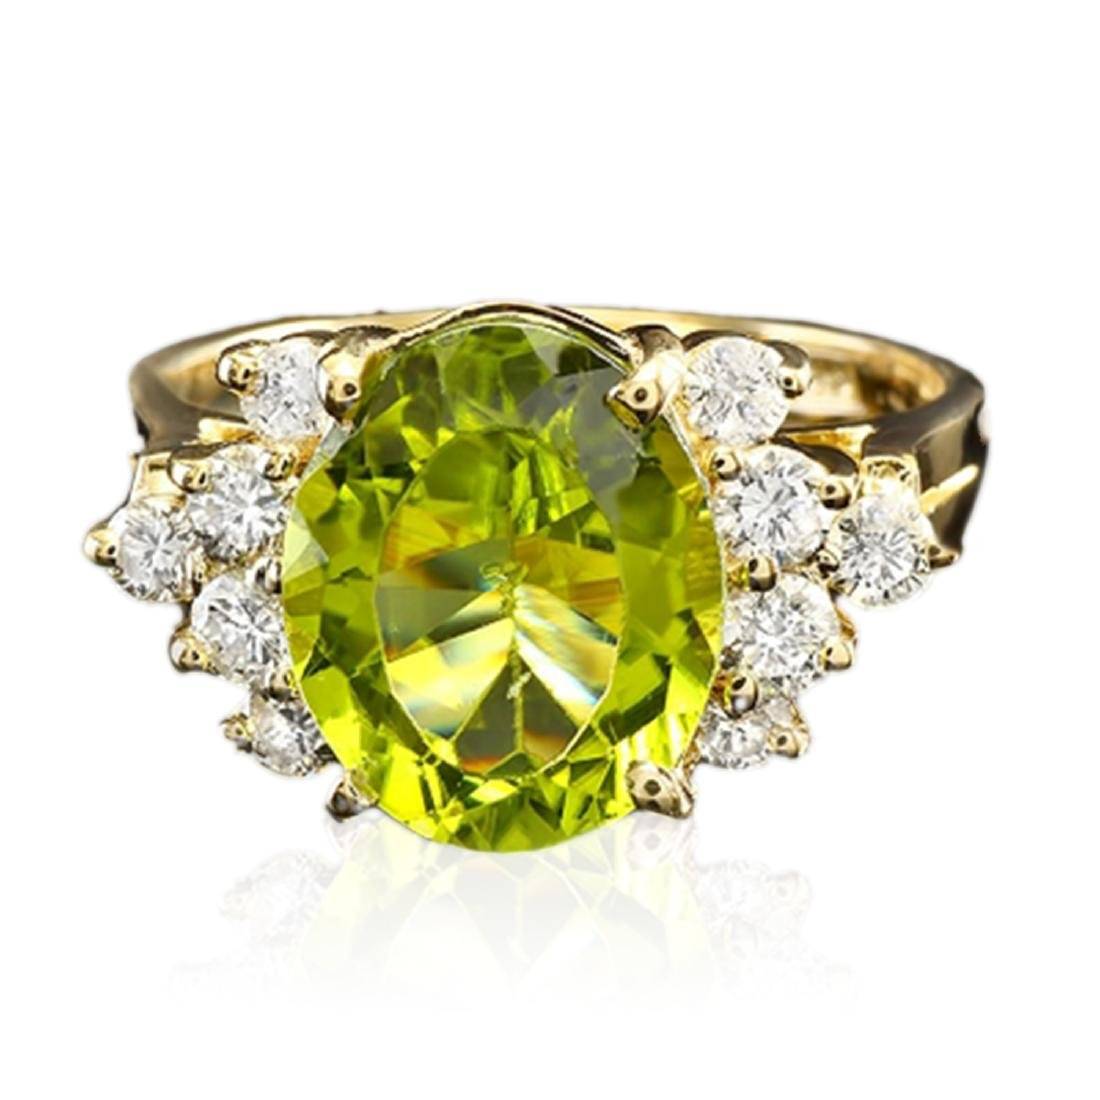 4.05 Carat Natural Peridot 18K Solid Yellow Gold